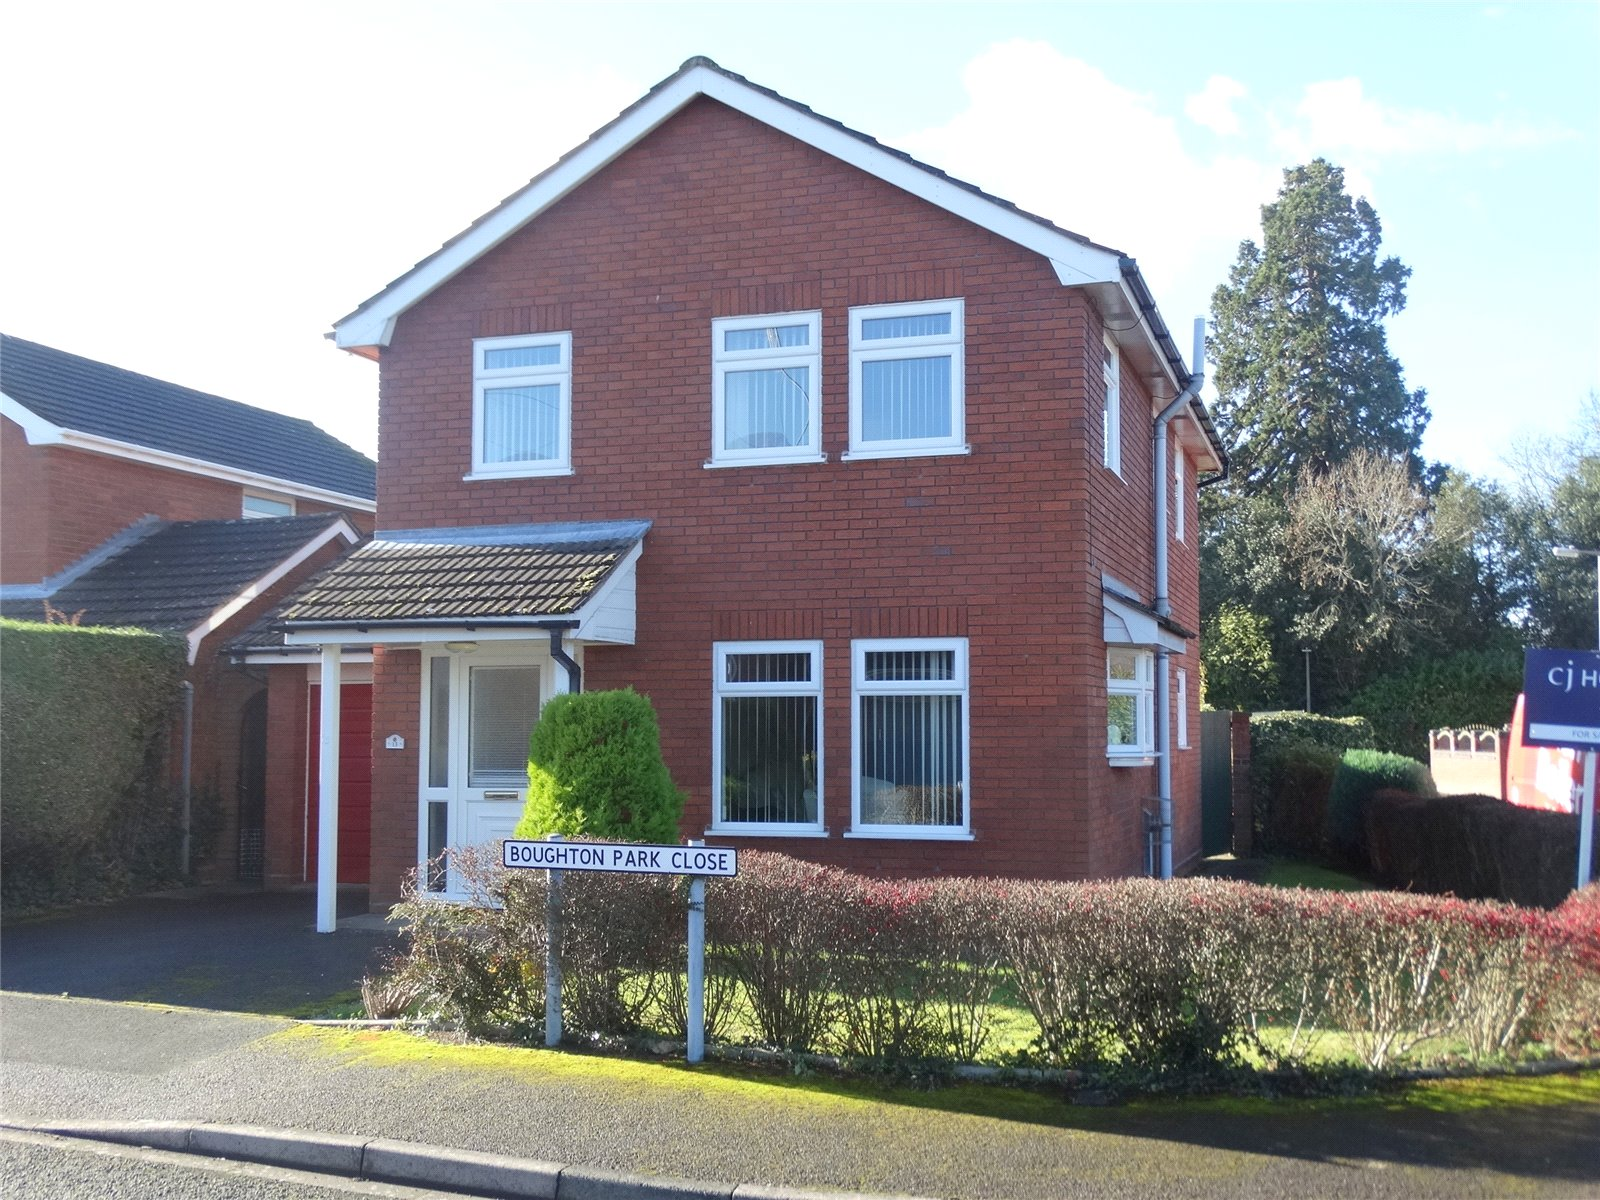 4 Bedrooms Detached House for sale in Boughton Park Close Worcester WR2